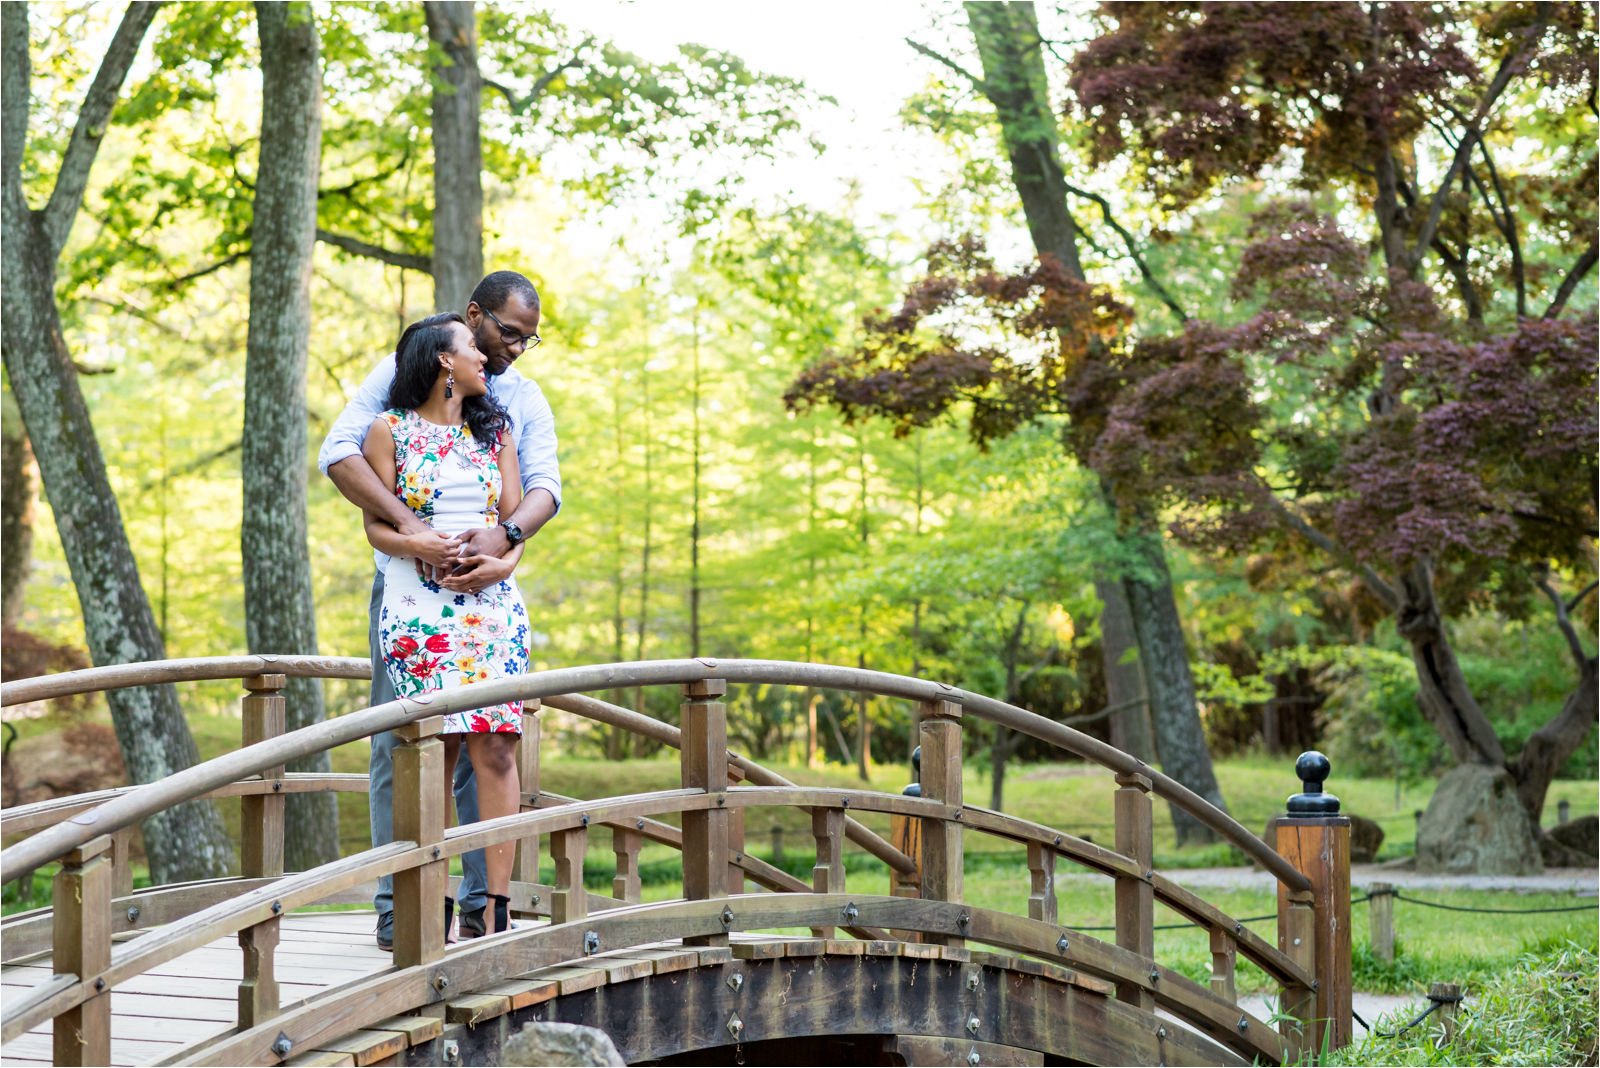 japanese-gardens-japanesegardens-engagement-images-maymont-park-italian-japanese-gardens-richmond-virginia-rva-va-focus-on-joy-photography-african-american-couple-white-dress-colorful-flowers-blue-polo-shirt-richmond-bridge